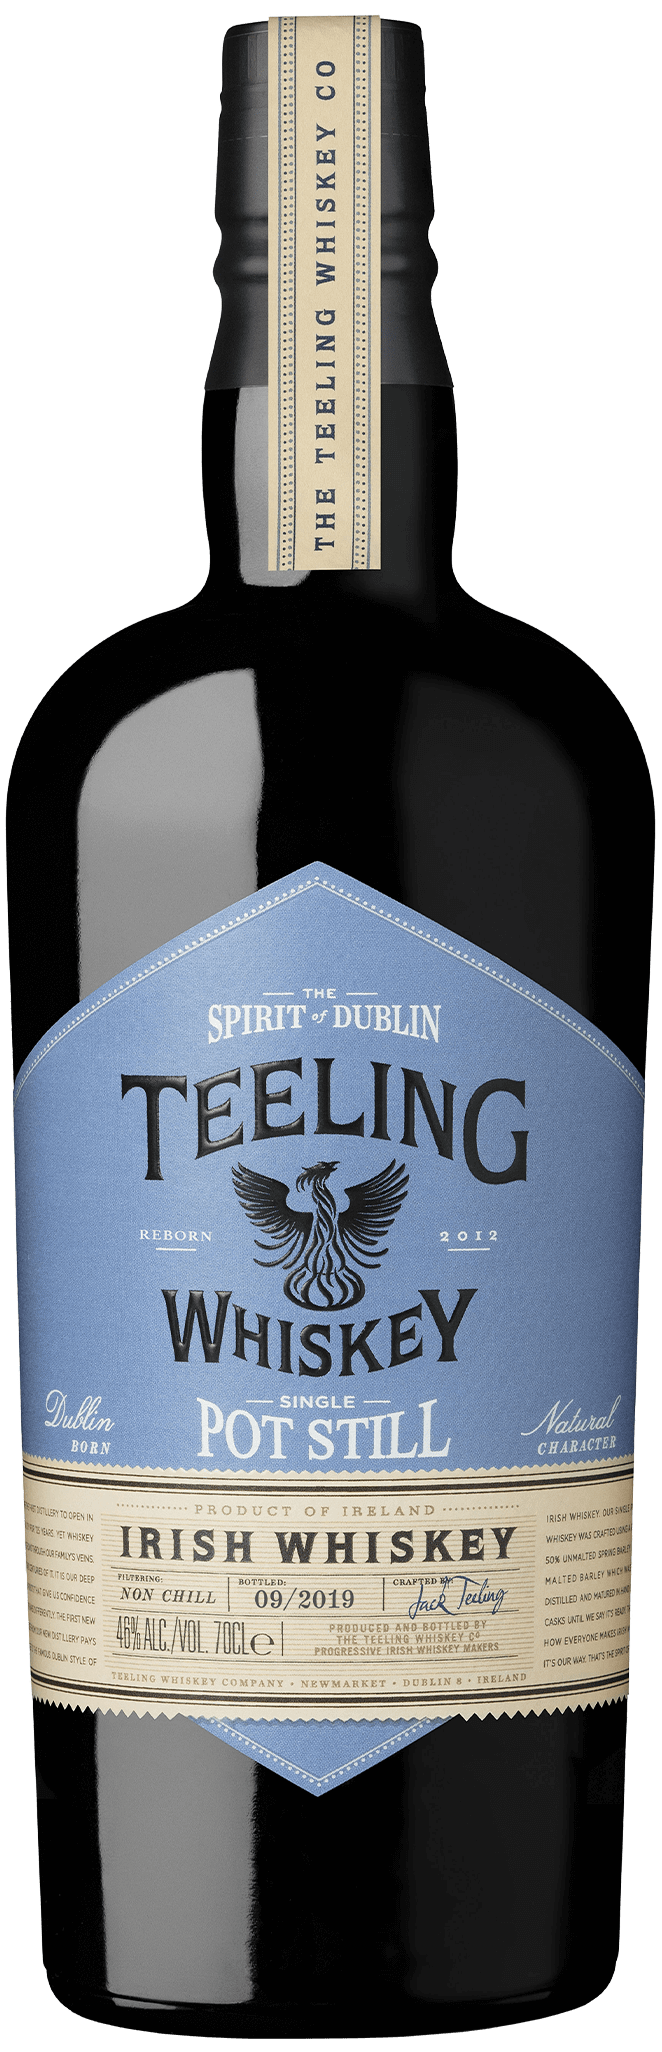 Teeling Pot Still